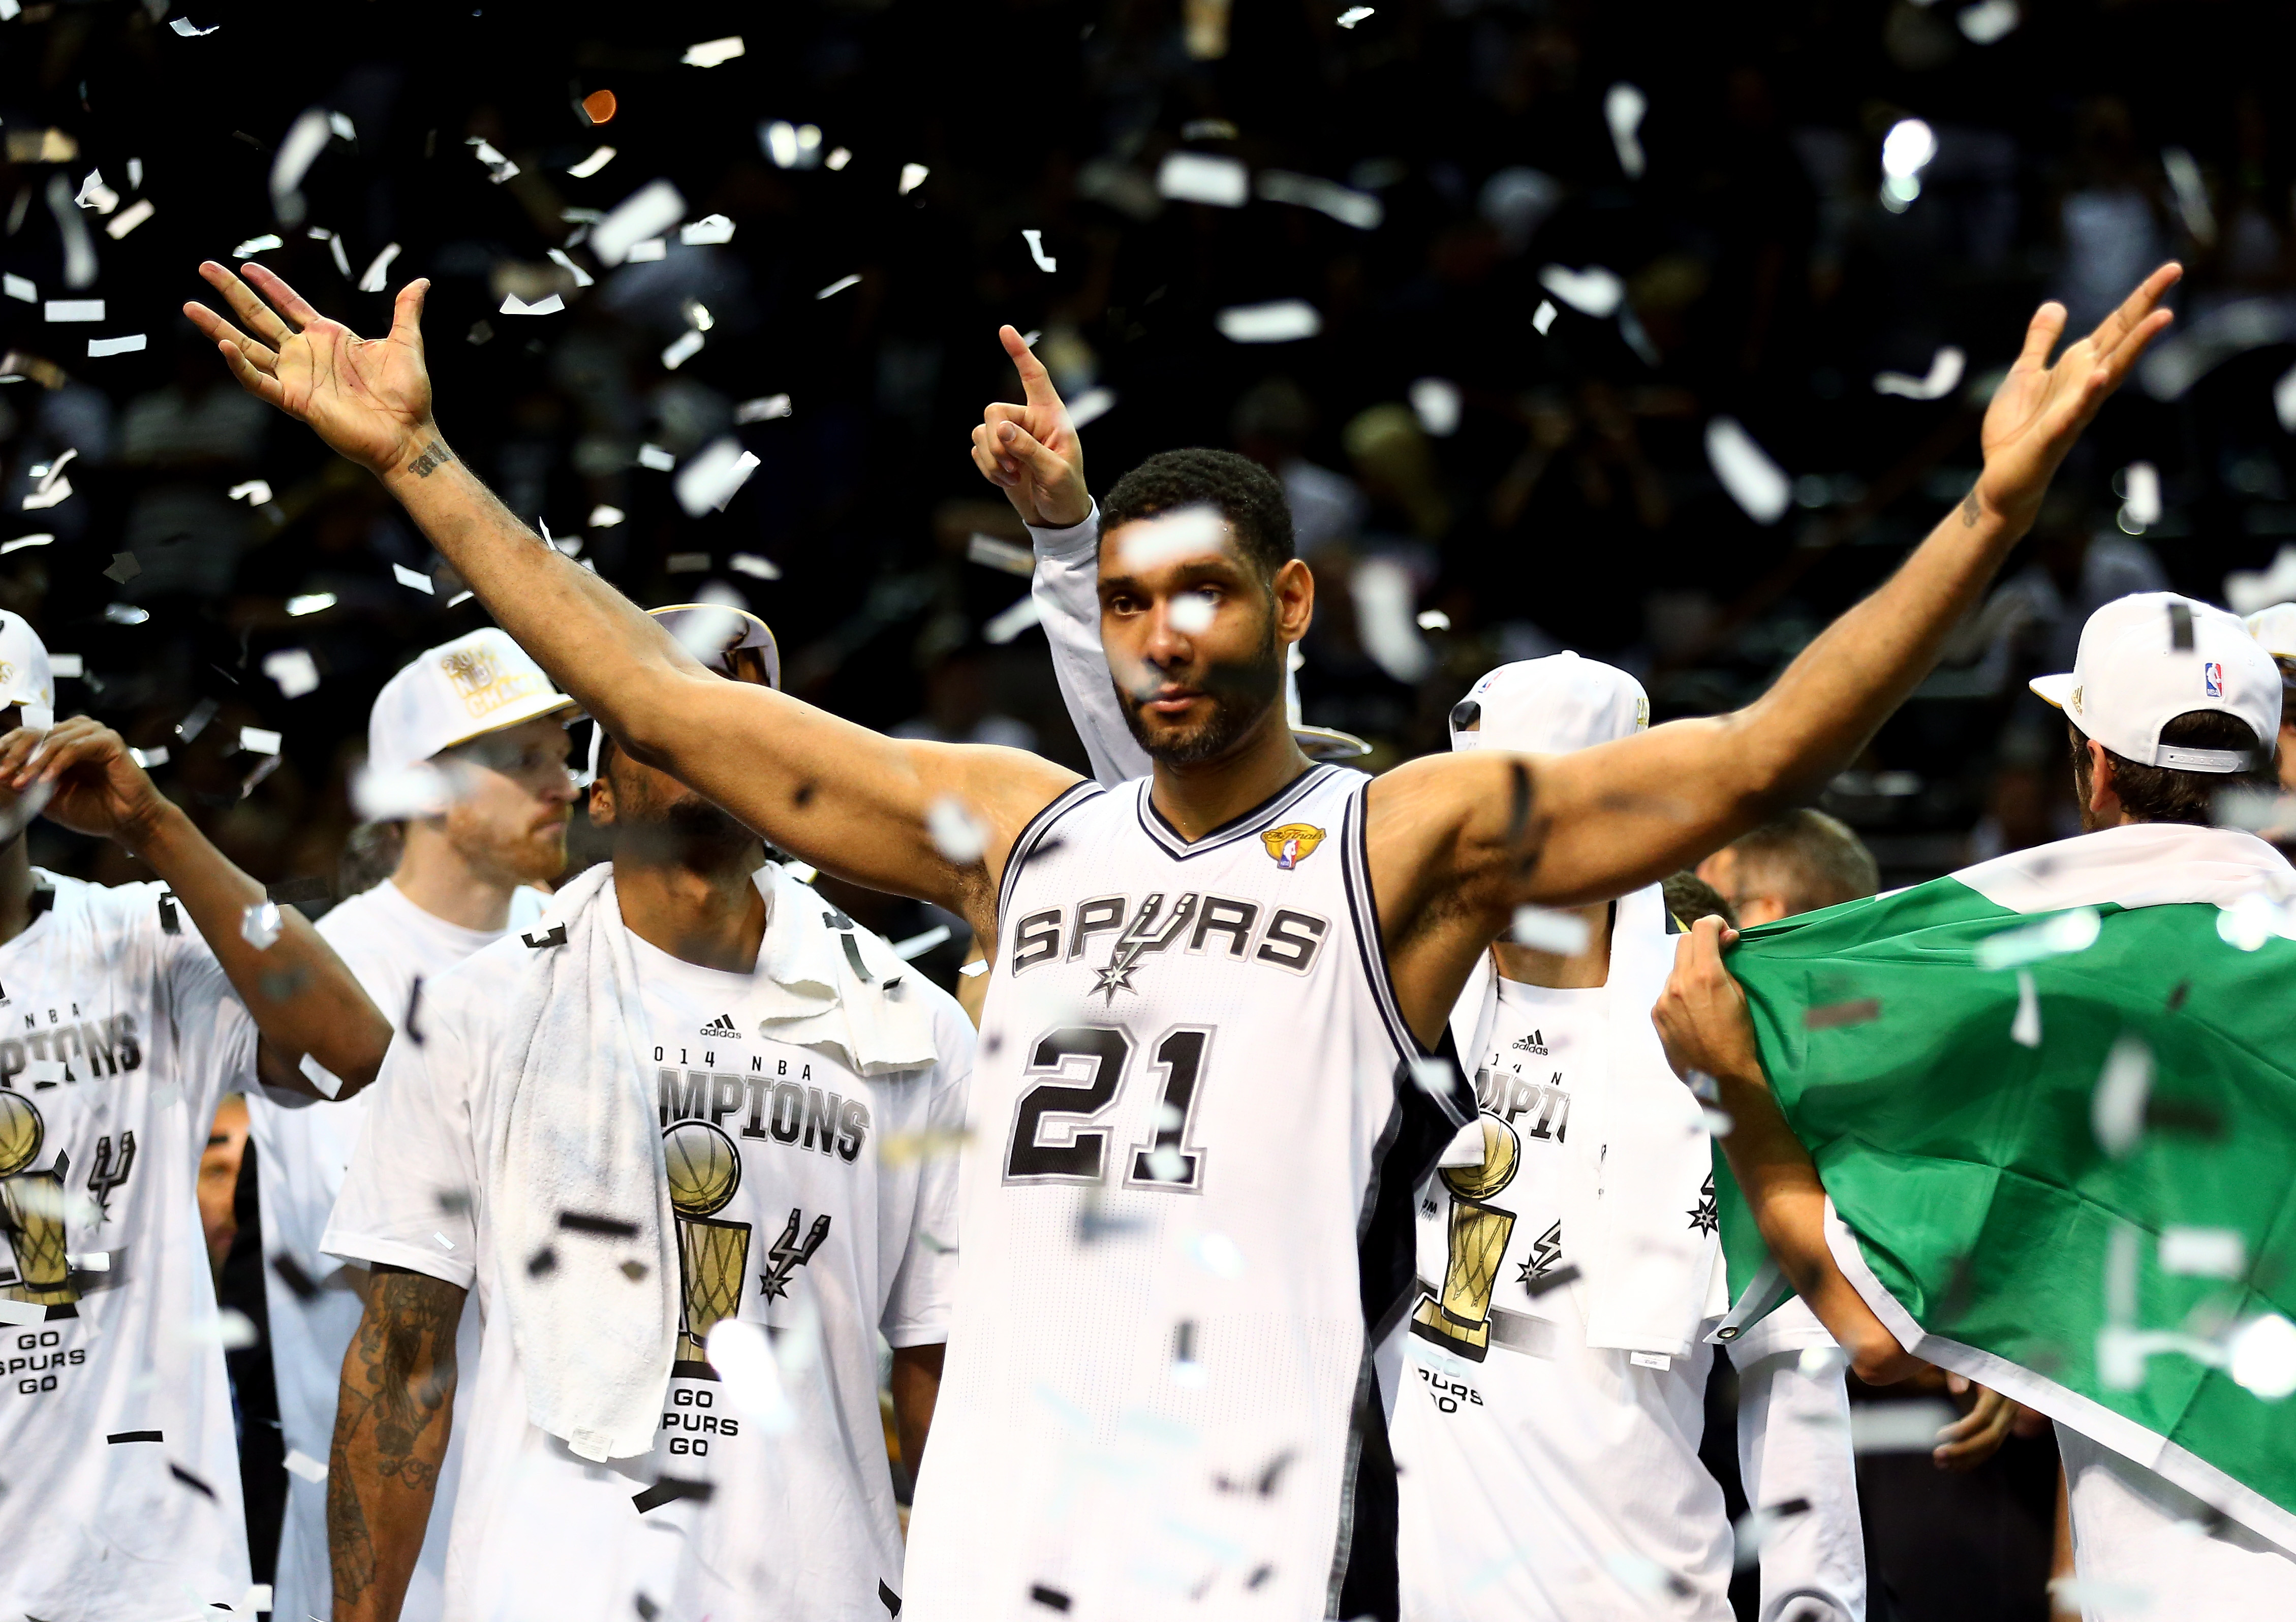 SAN ANTONIO, TX - JUNE 15:  Tim Duncan #21 of the San Antonio Spurs celebrates after defeating the Miami Heat in Game Five of the 2014 NBA Finals at the AT&T Center on June 15, 2014 in San Antonio, Texas. NOTE TO USER: User expressly acknowledges and agrees that, by downloading and or using this photograph, User is consenting to the terms and conditions of the Getty Images License Agreement.  (Photo by Andy Lyons/Getty Images)